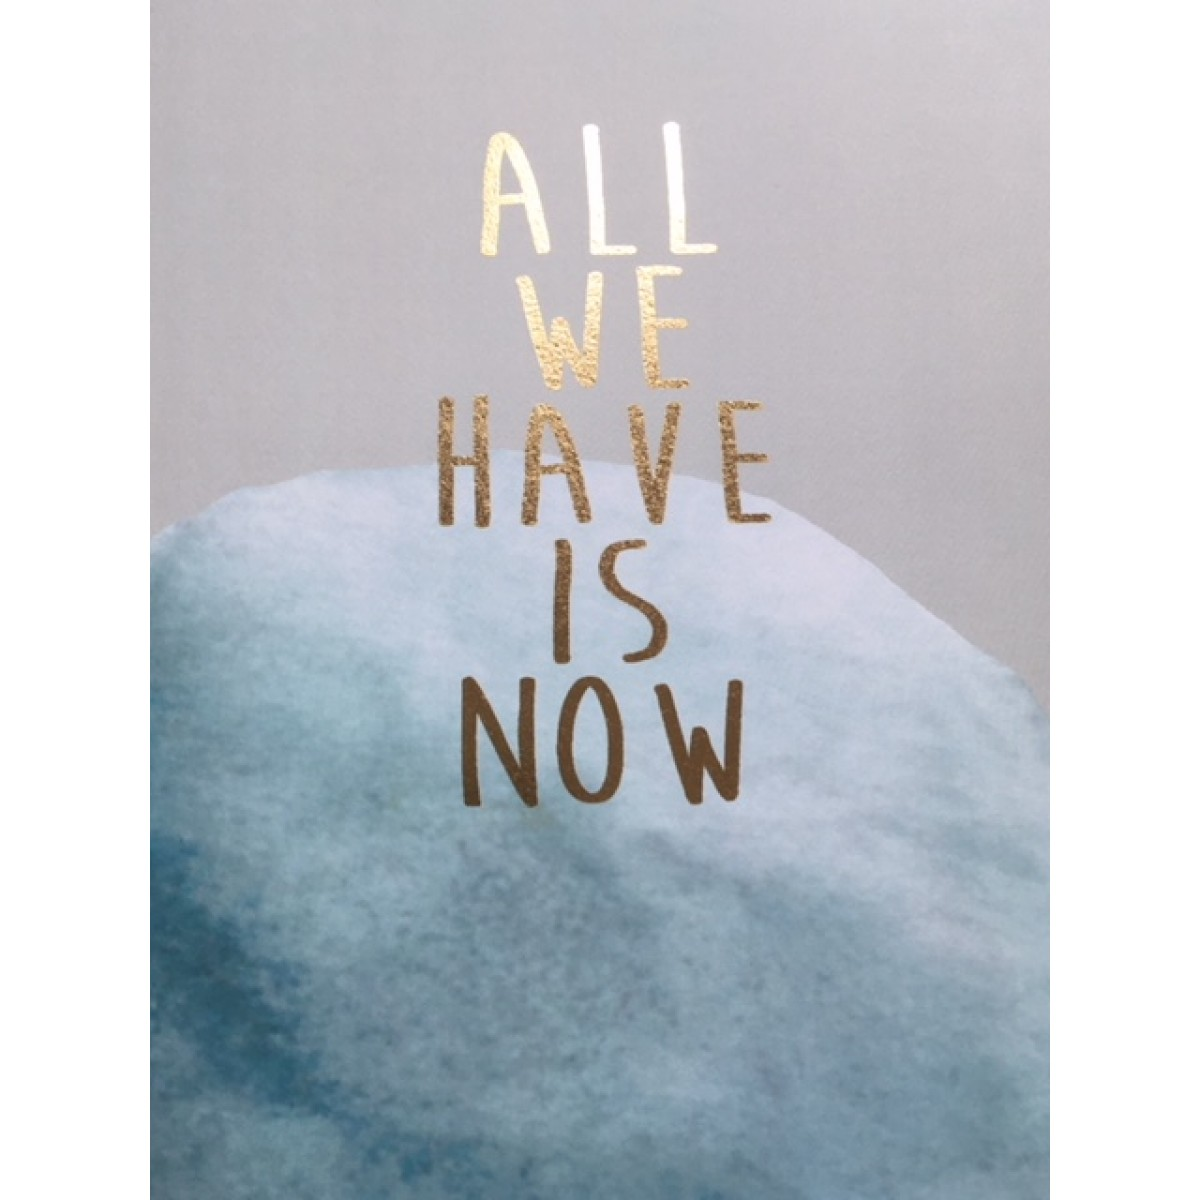 All we have is now - A4 Print - Anna Cosma